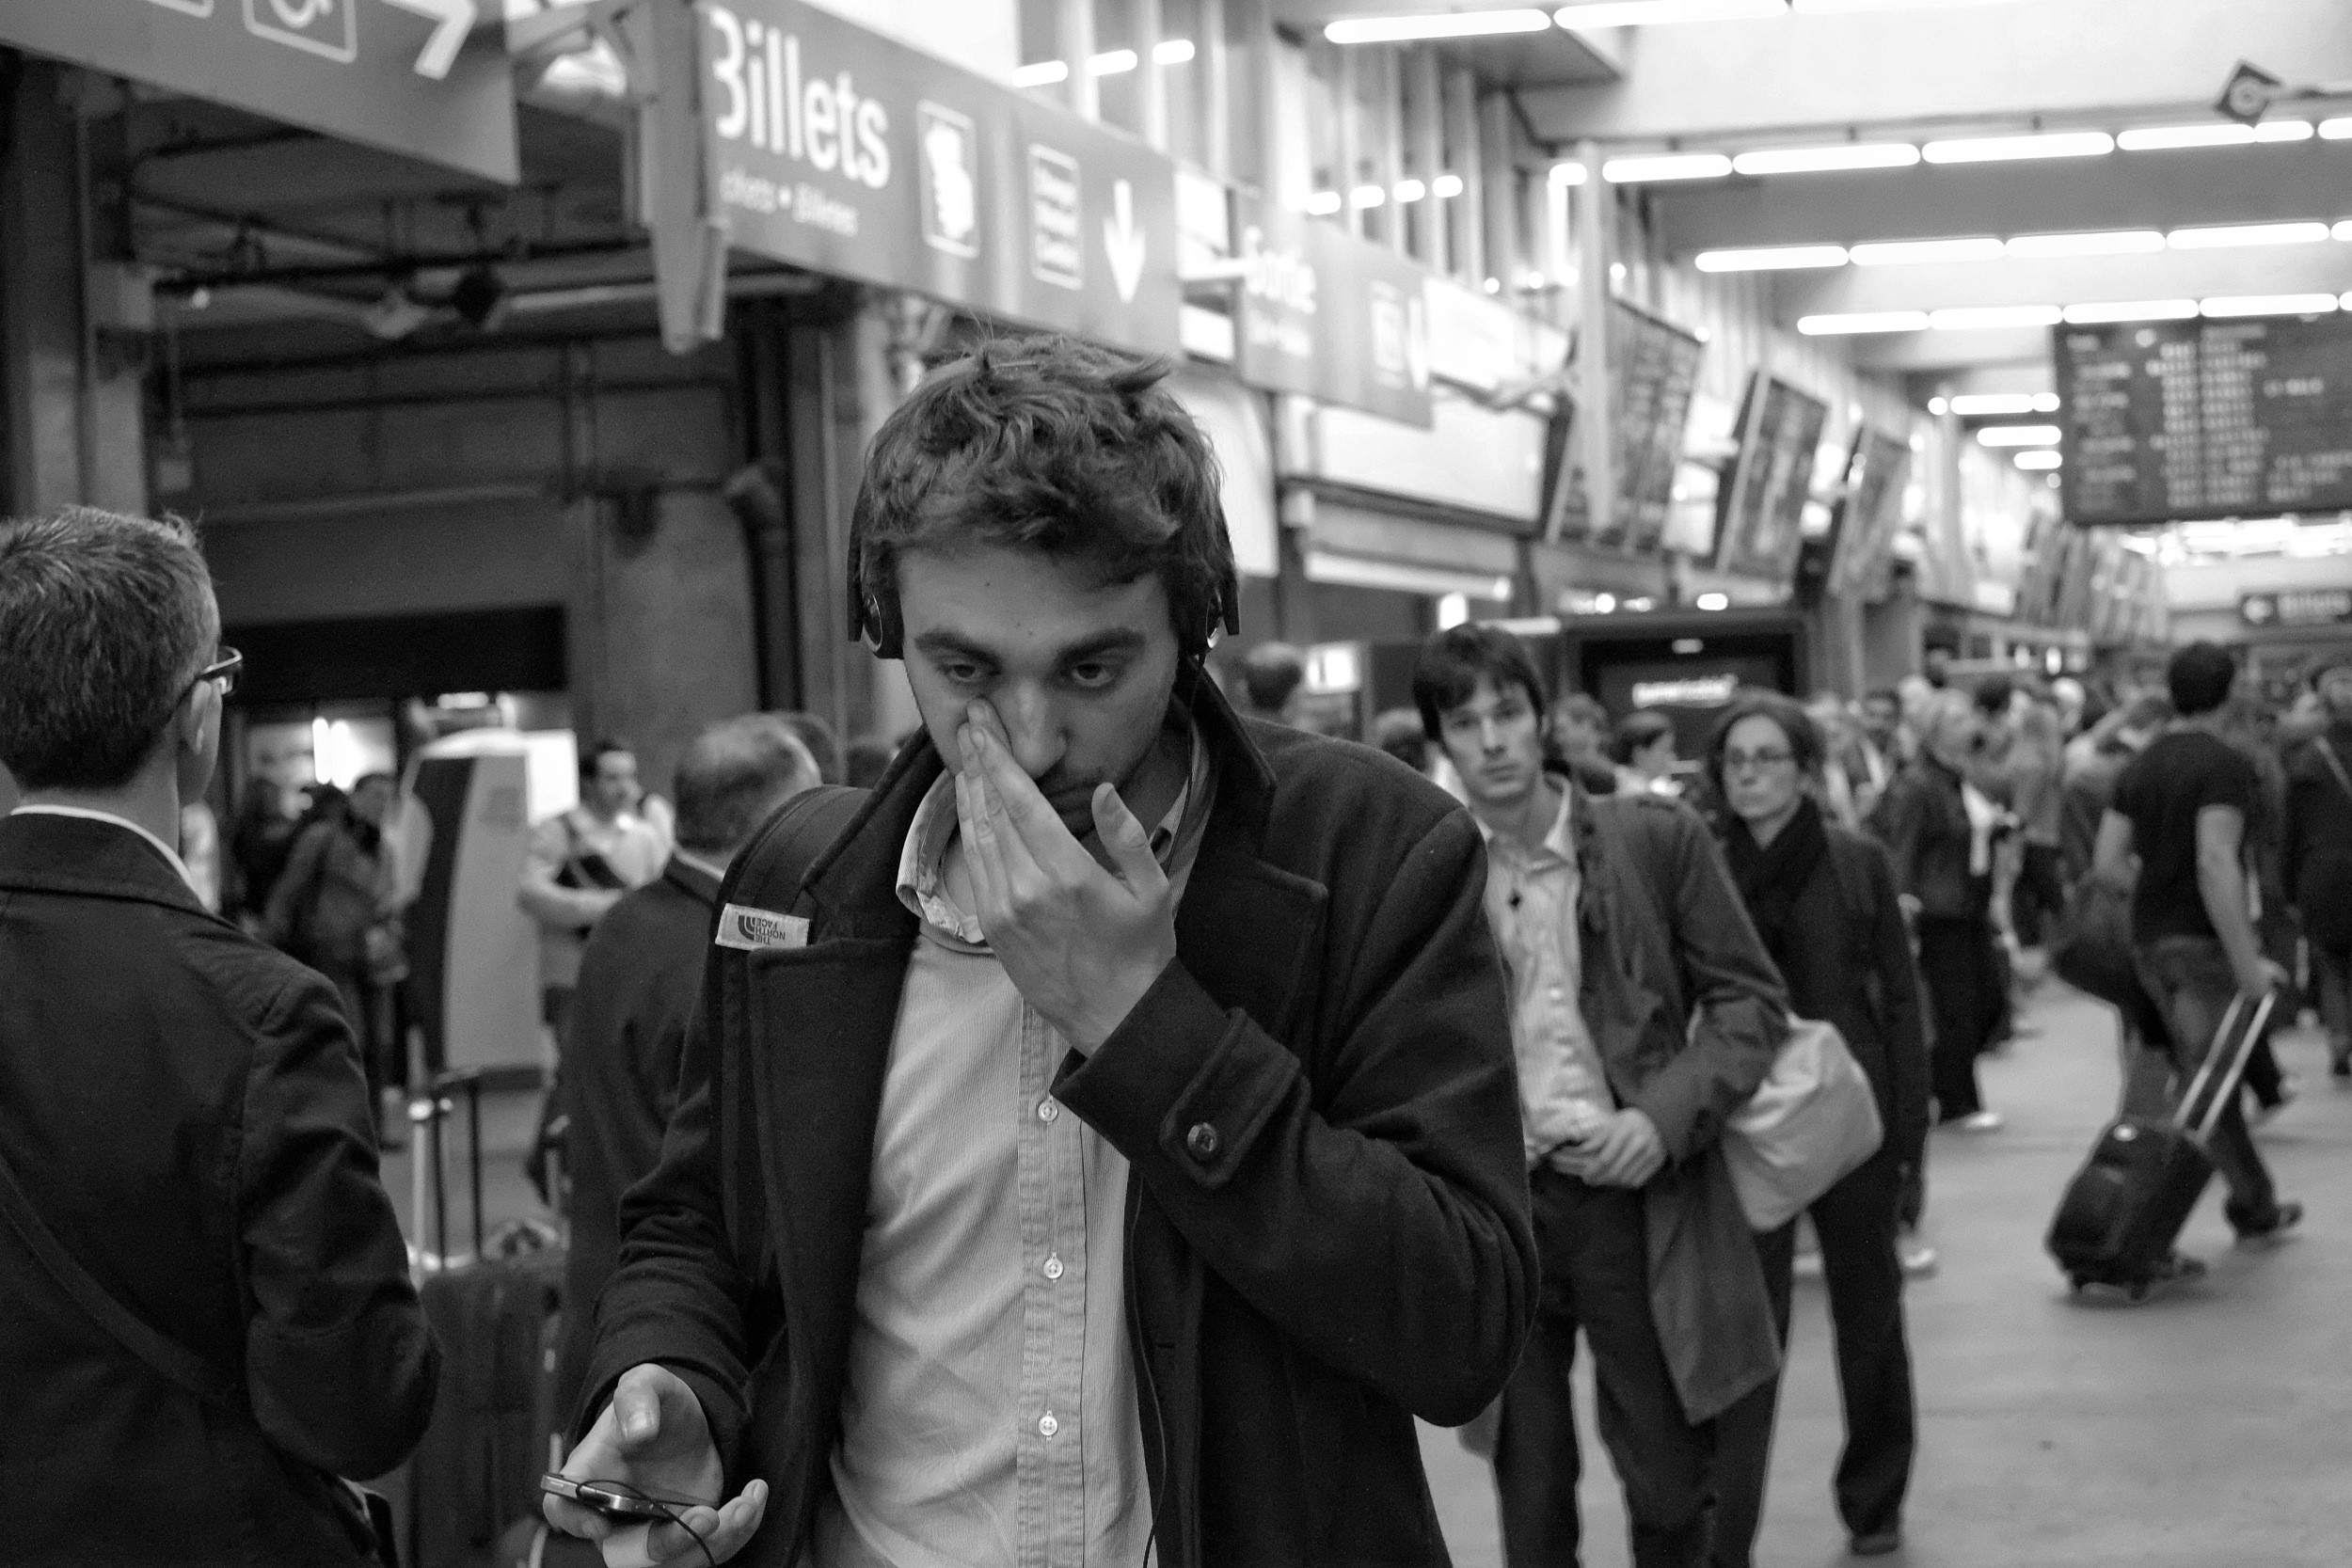 Tired commuter at Montparnasse station in Paris - Fuji X-Pro1